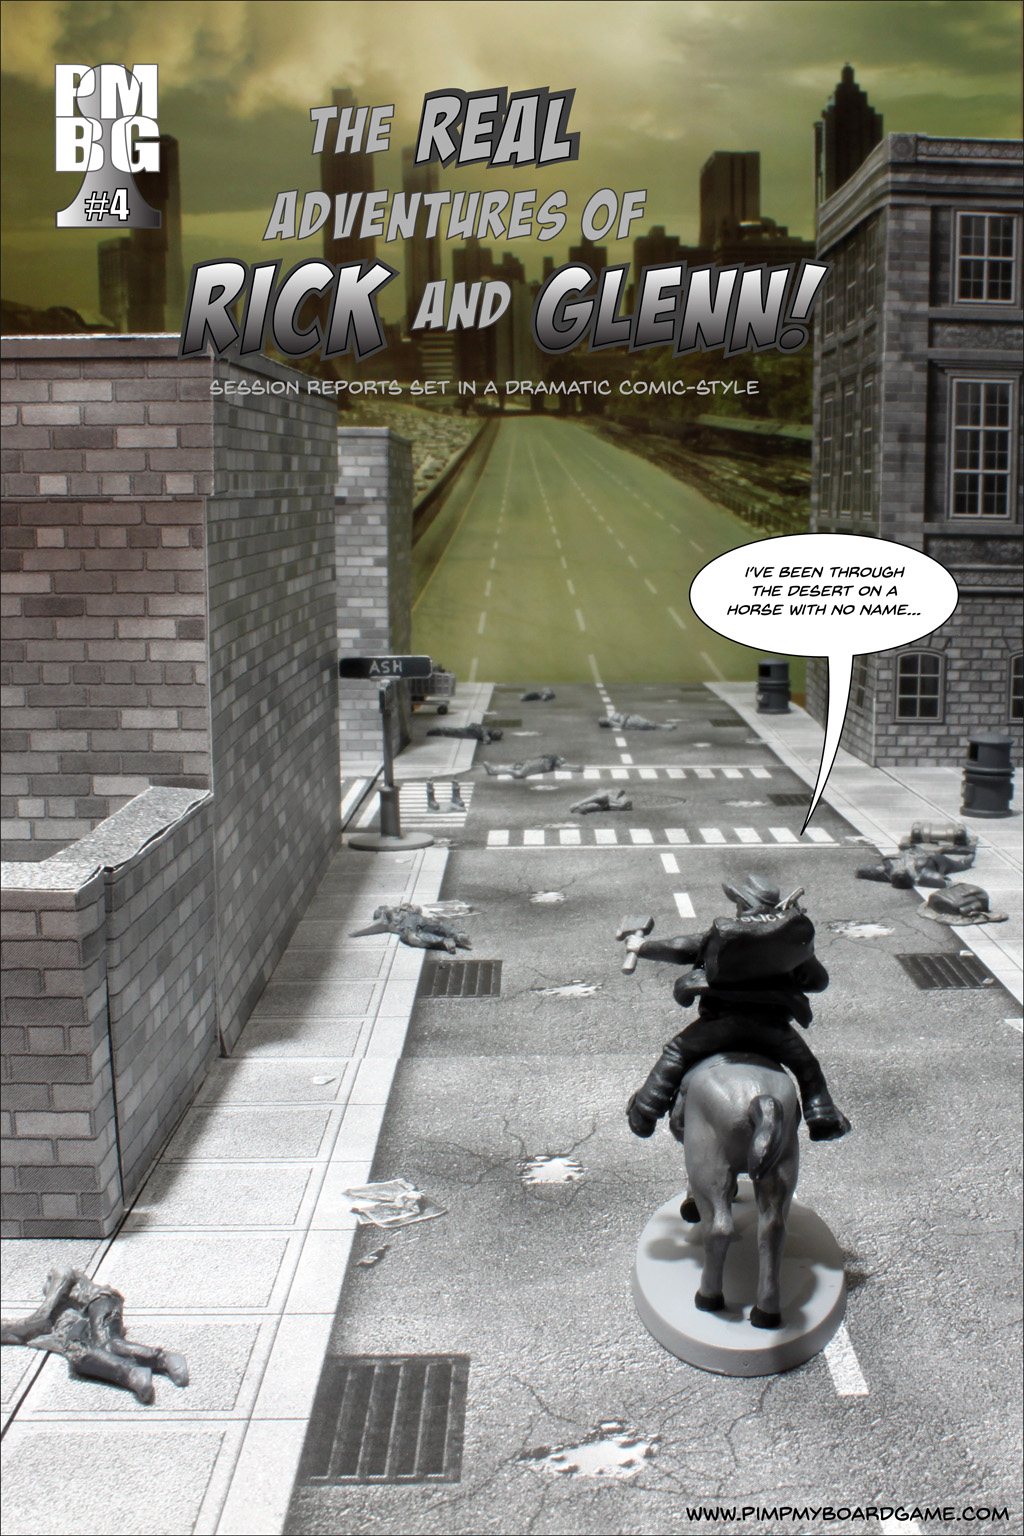 The Real Adventures of Rick and Glenn! Chapter 4 - cover